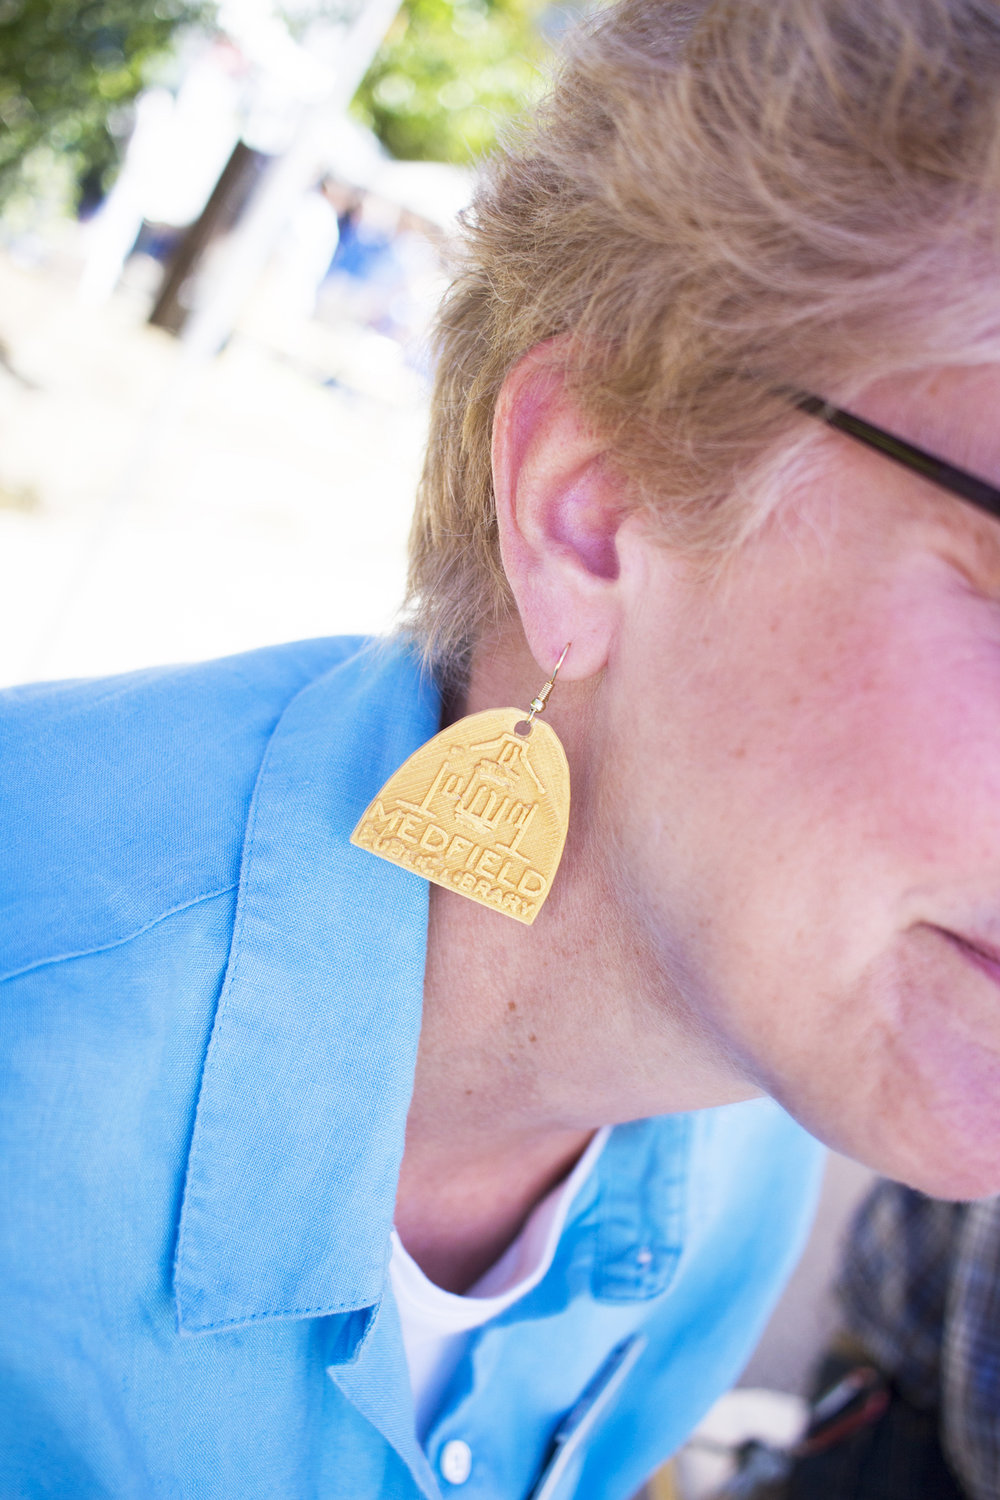 Amazing 3D-printed earrings adorned Library Director Kristen Chin.